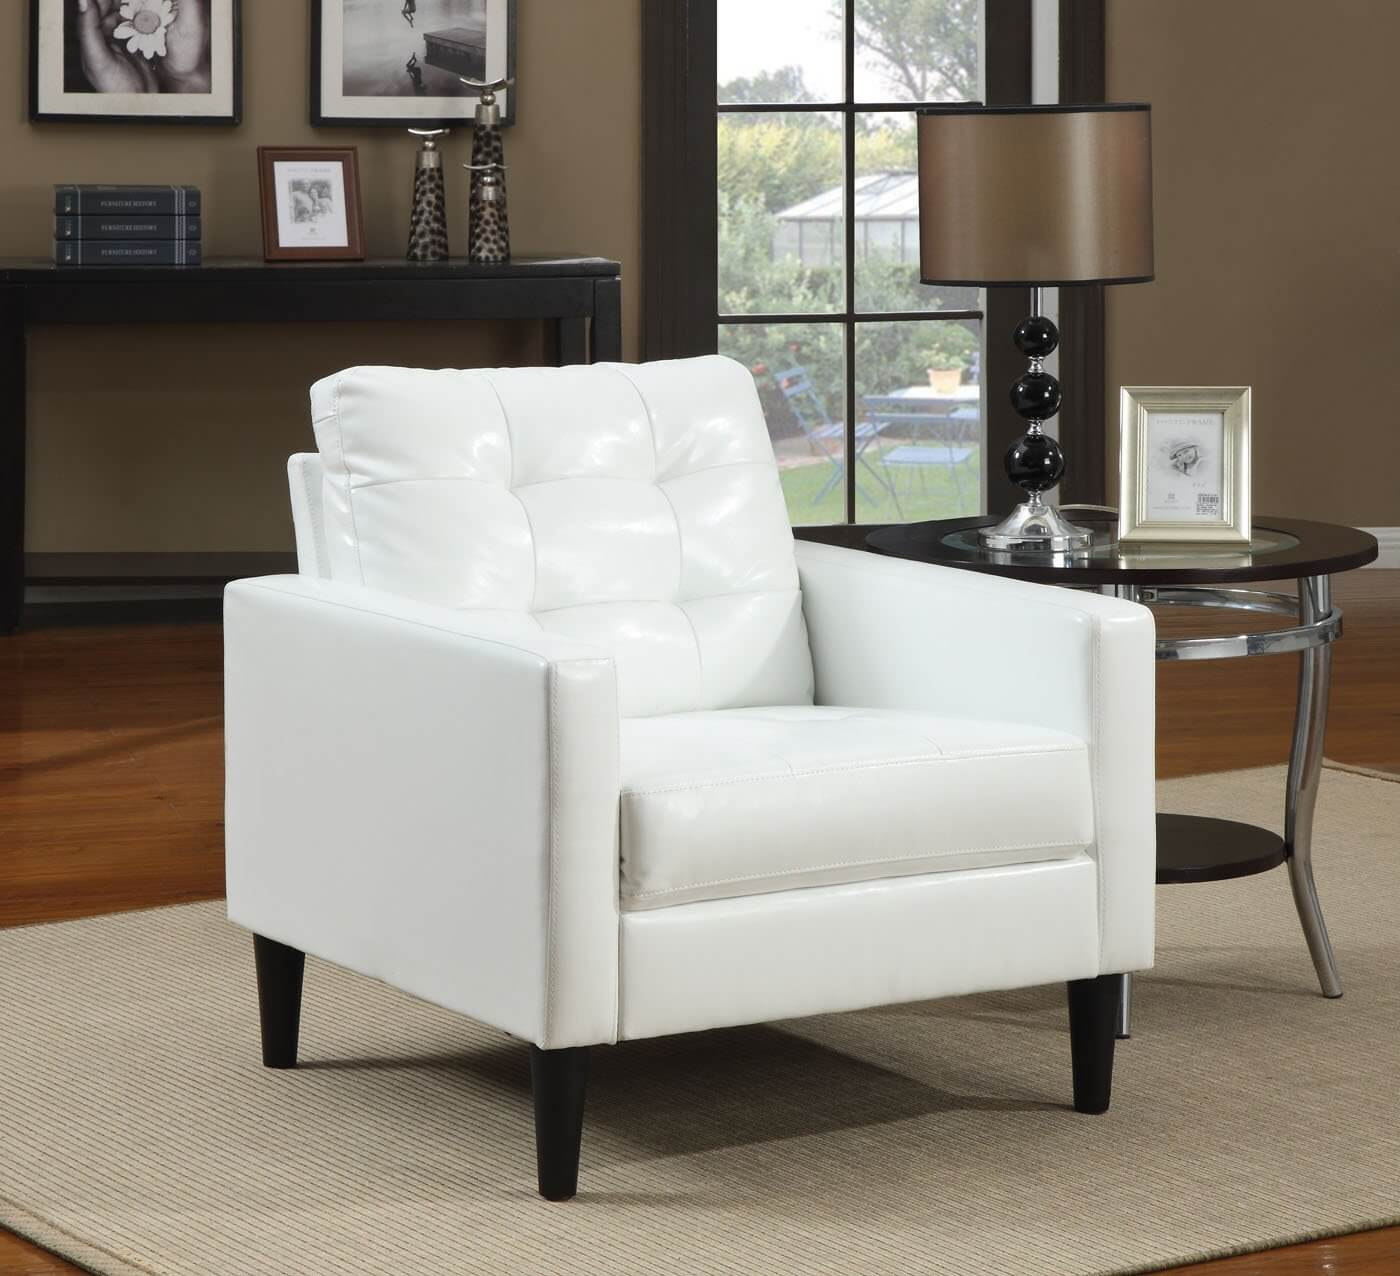 Awesome White Accent Chair Decor